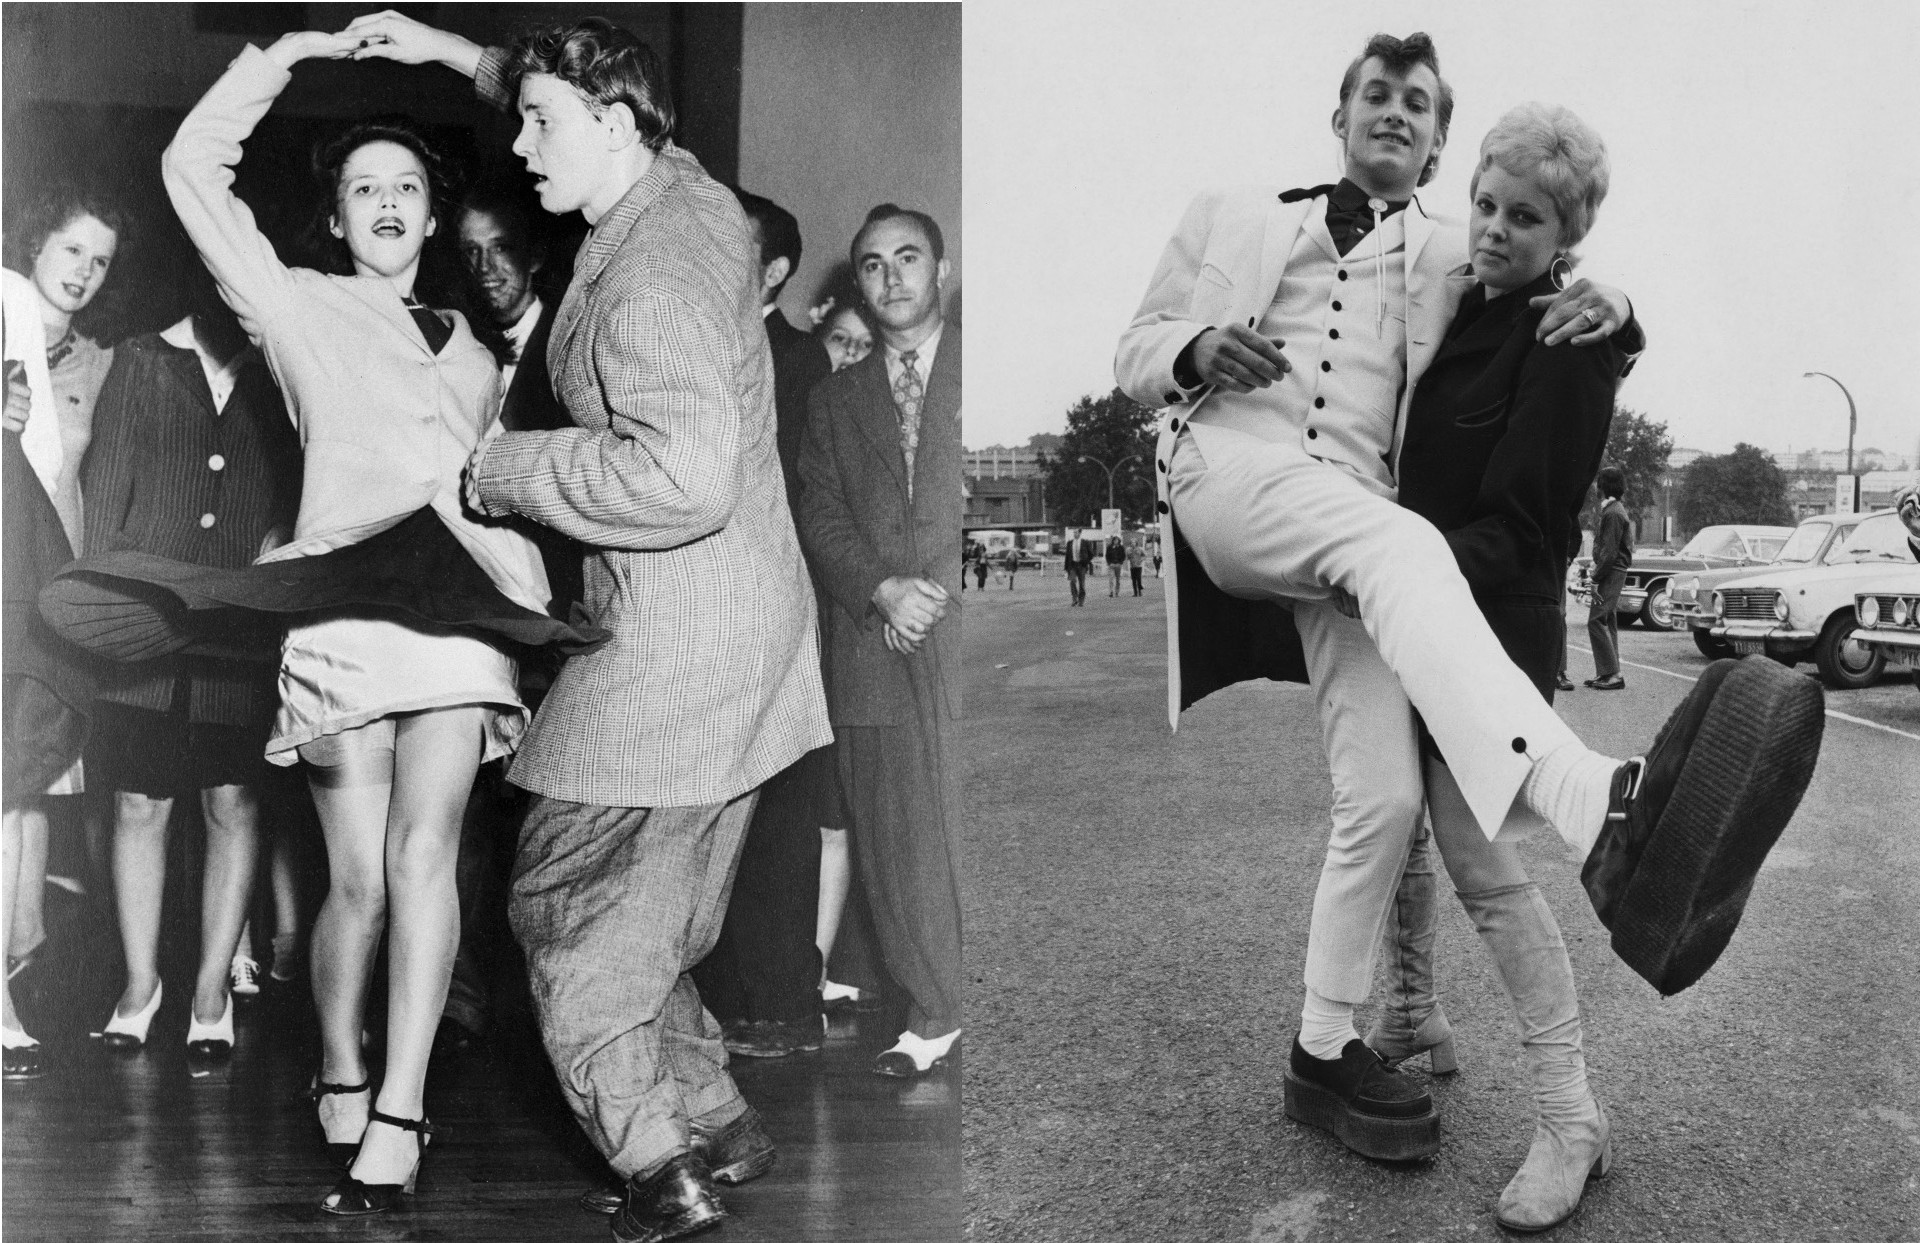 Parallels between the pachuco and teddy boy subculture